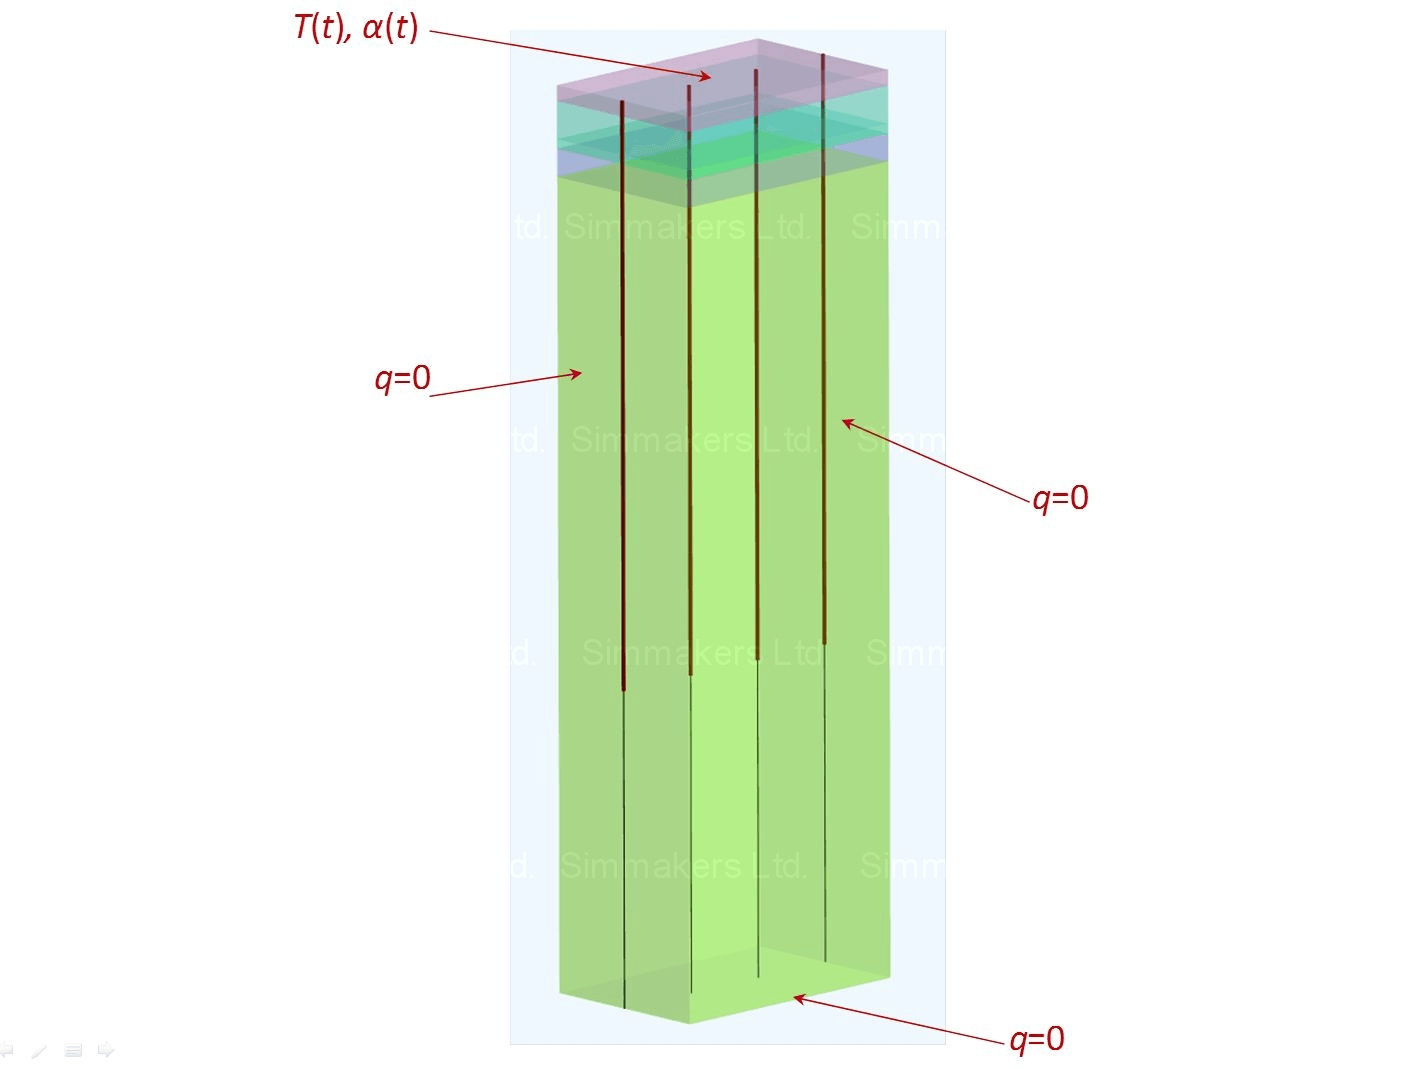 Specification of boundary conditions for borehole thermal analysis